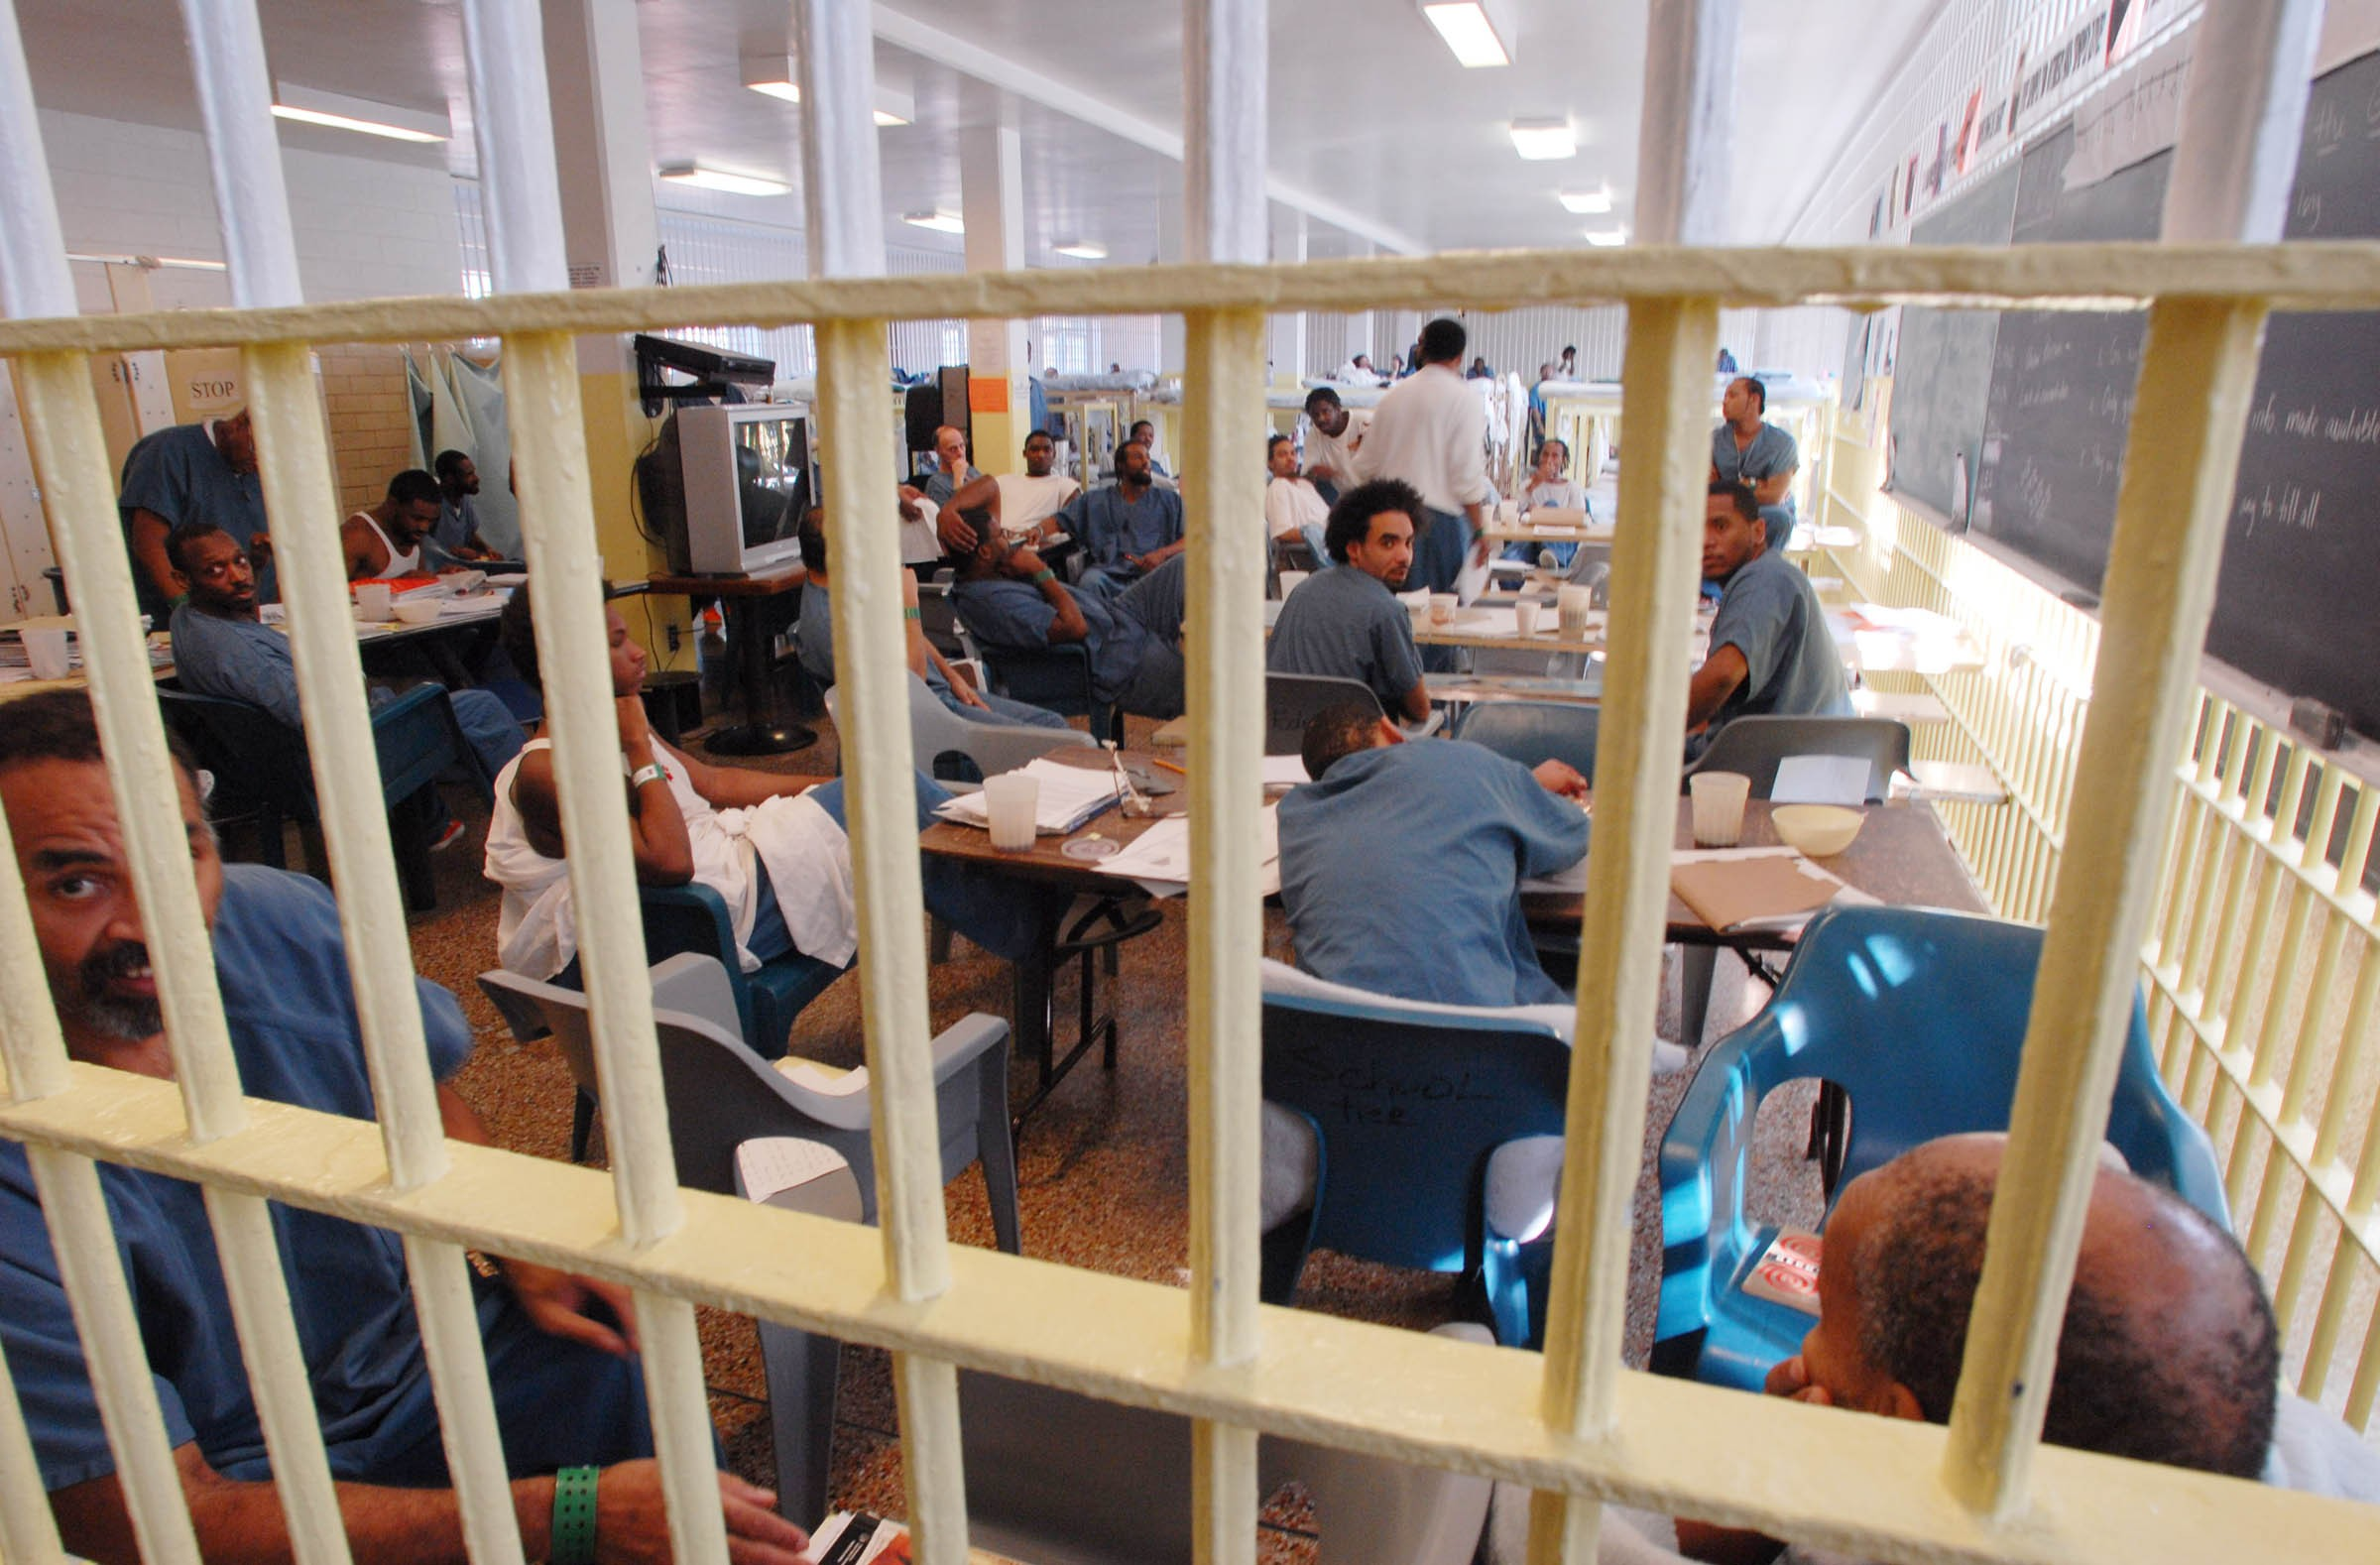 The great escape news and features style weekly richmond va click to enlarge as the city prepares to open a new smaller jail next year administrators must malvernweather Images